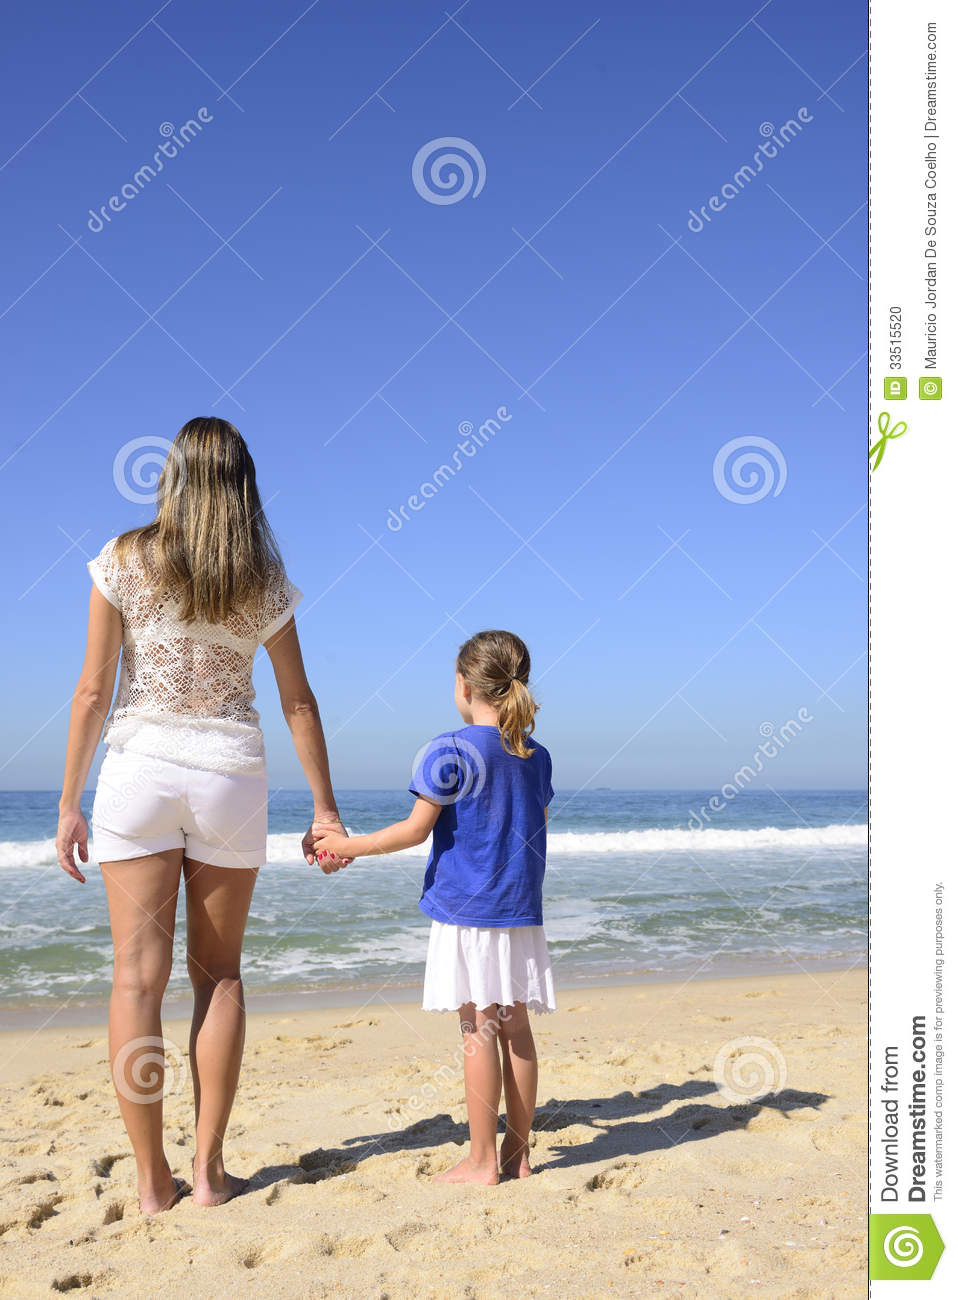 naked mom and daughter on the beach